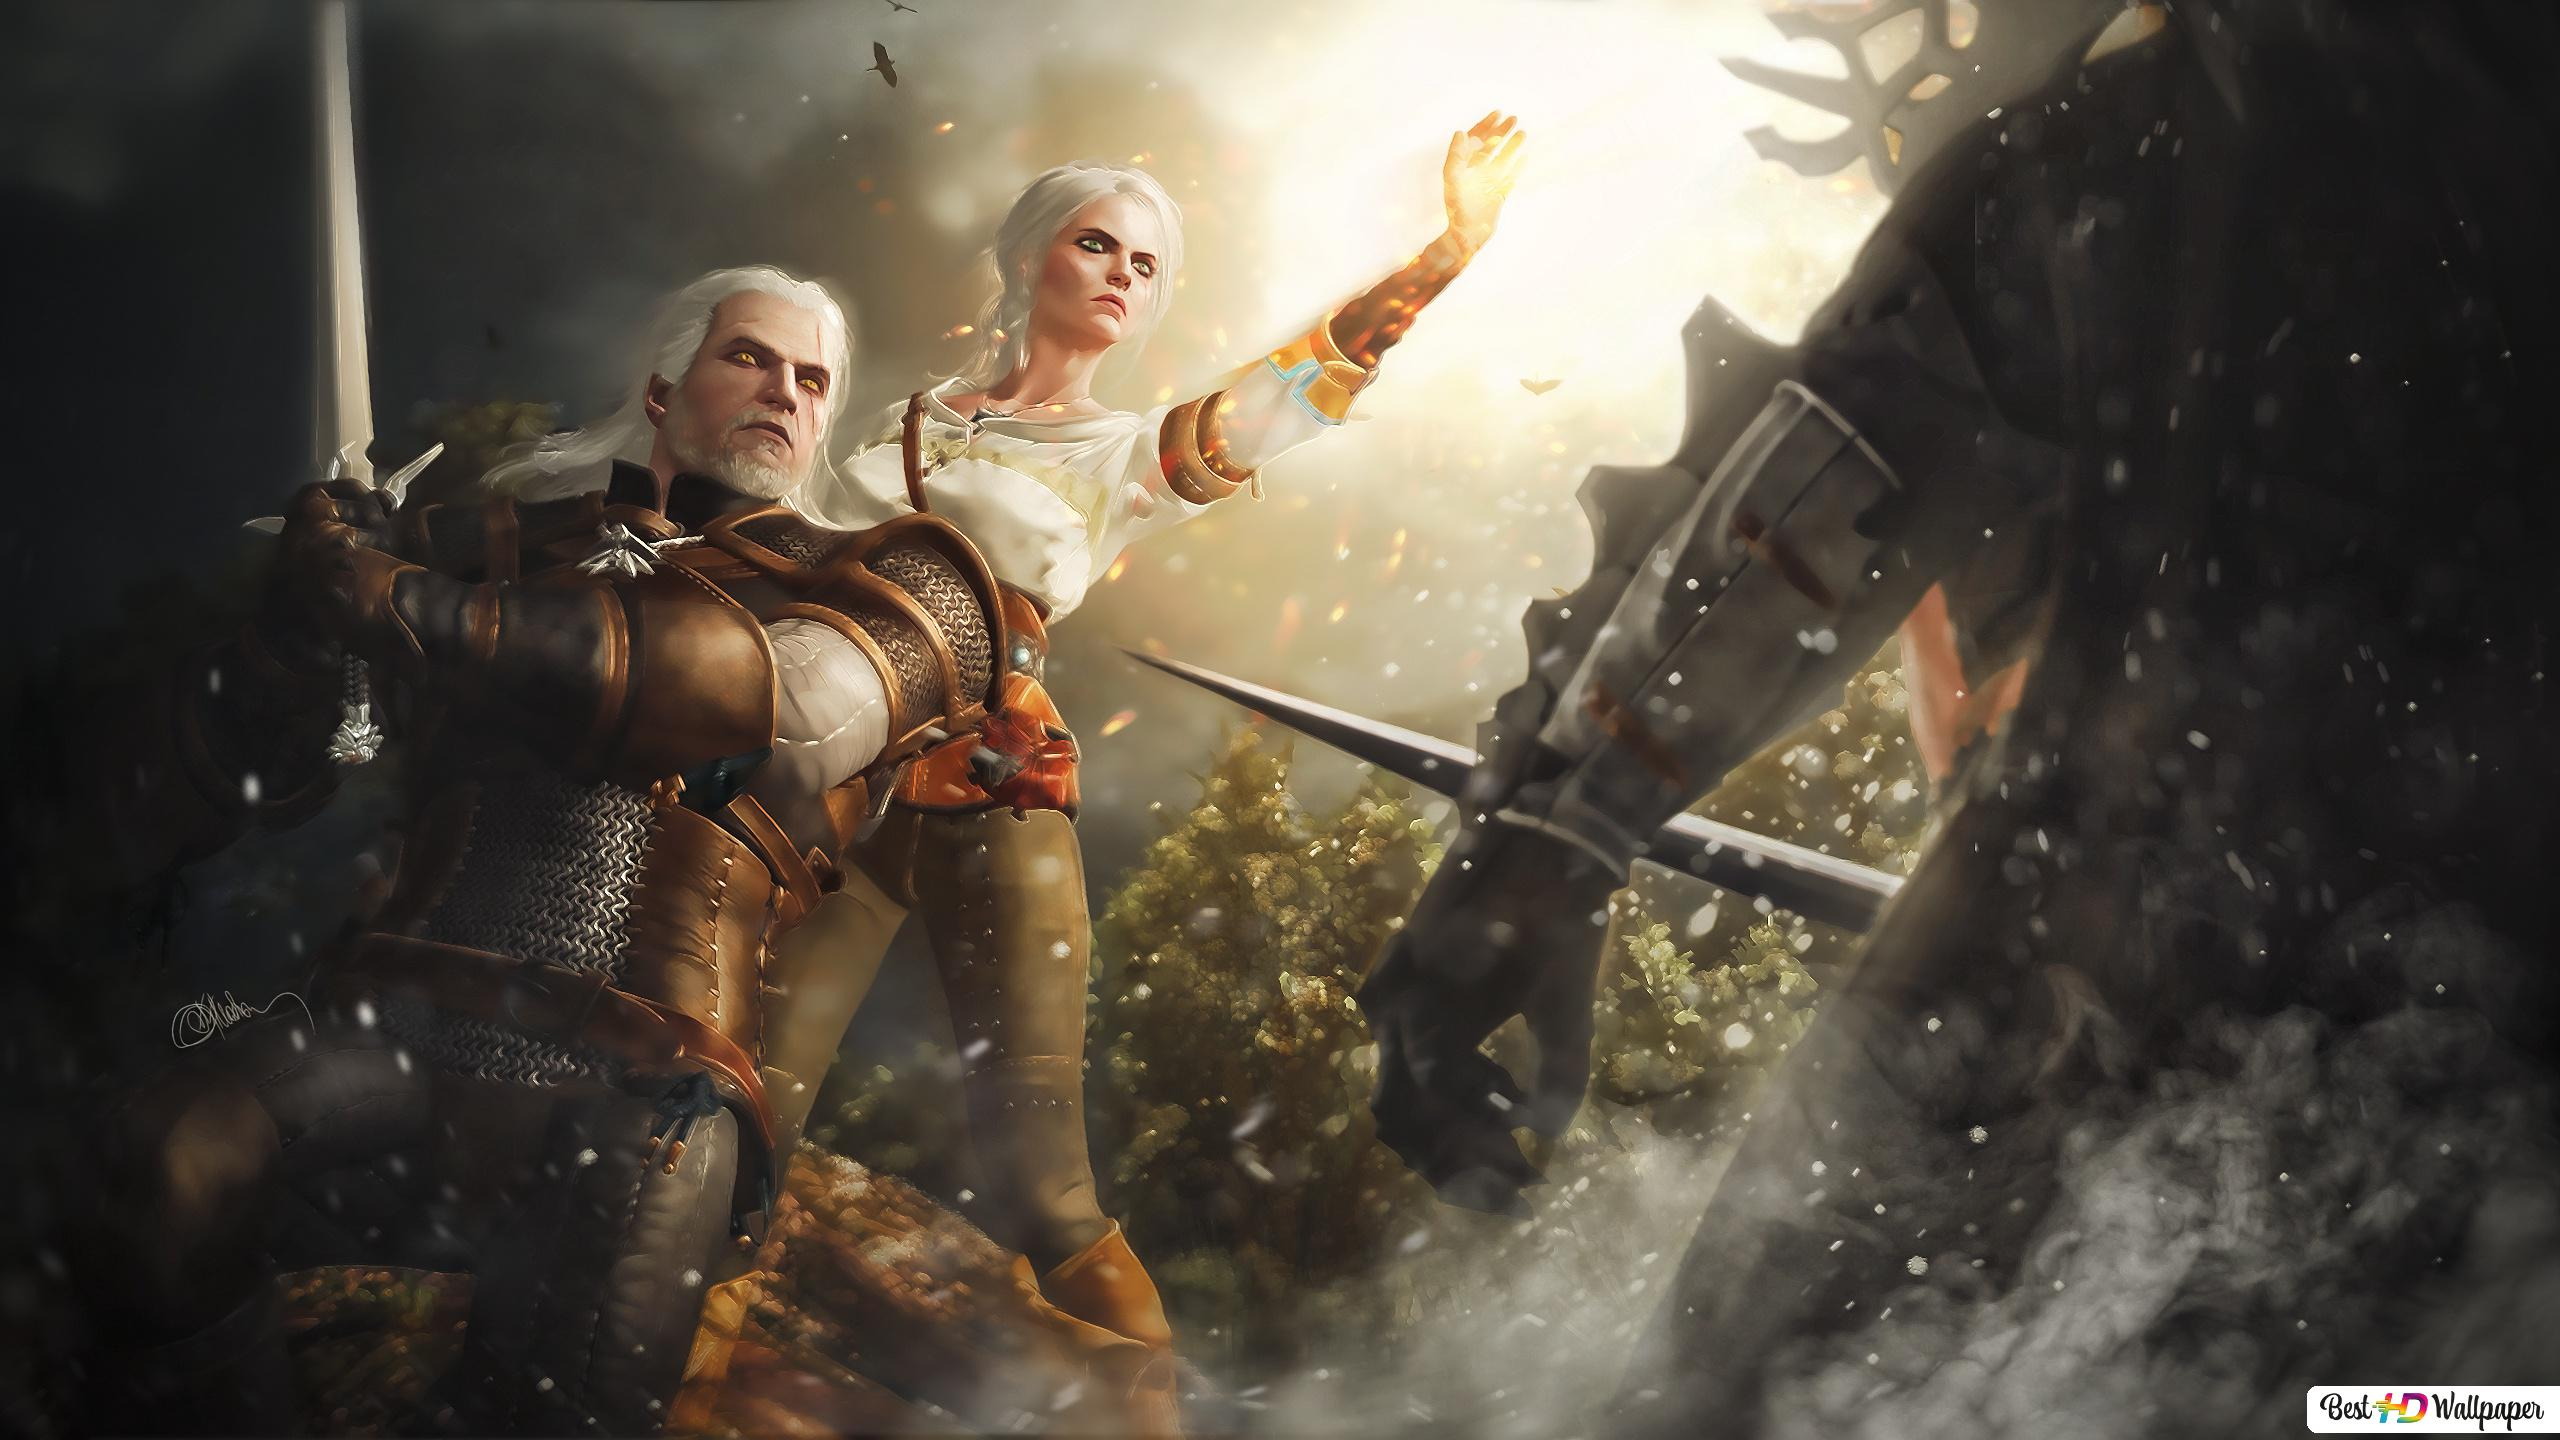 The Witcher 3 Wild Hunt Geralt And Ciri Hd Wallpaper Download